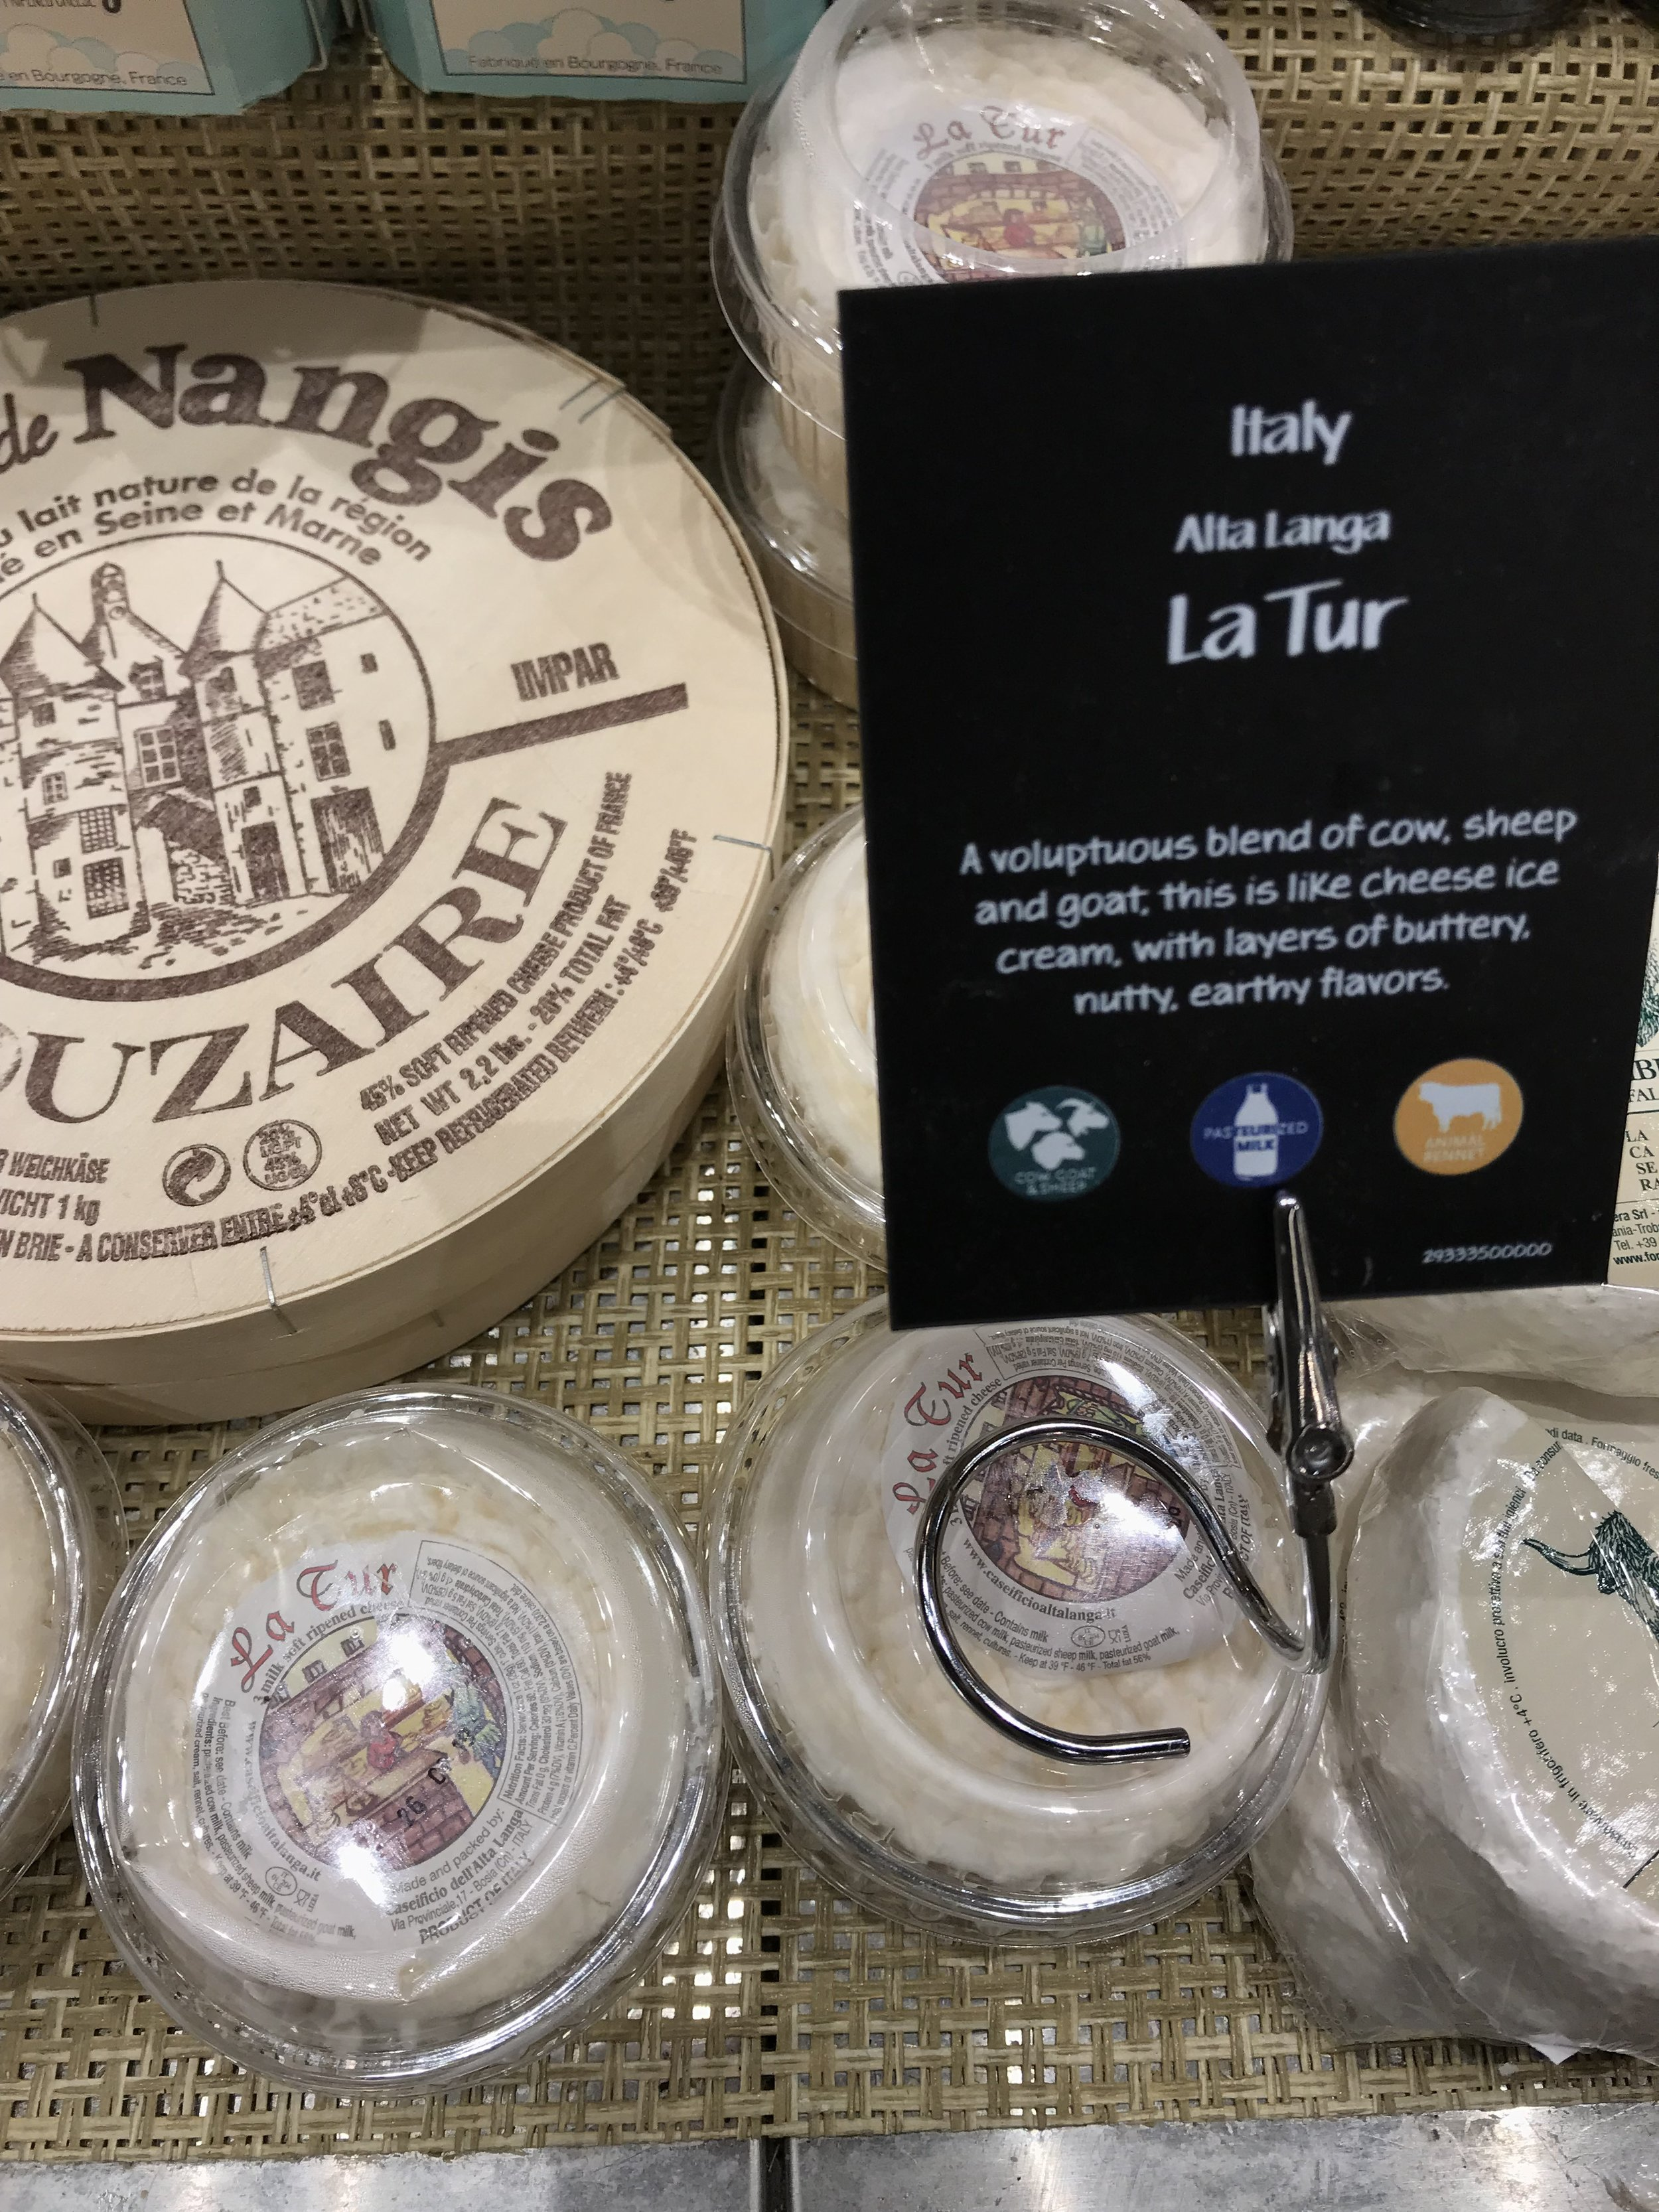 La Tur is a blend of cow, sheep and goat cheese and won't disappoint!